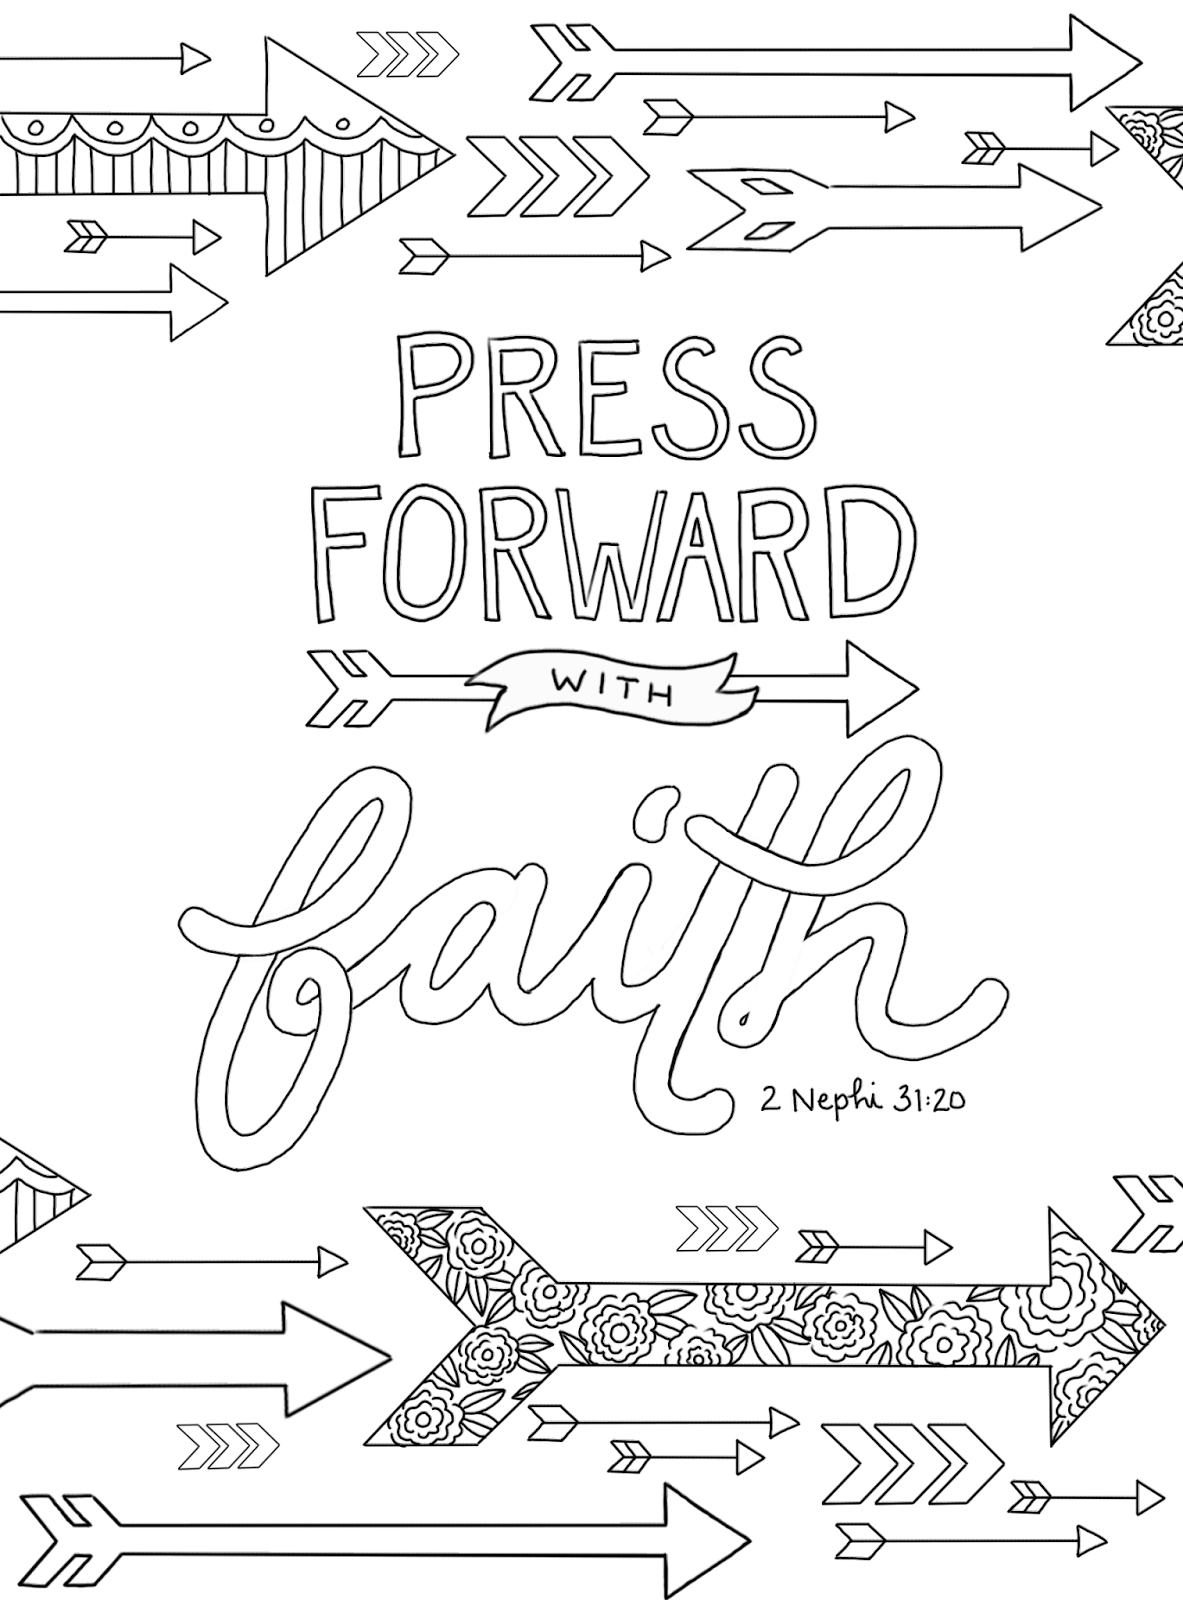 just what i squeeze in Press Forward with Faith coloring